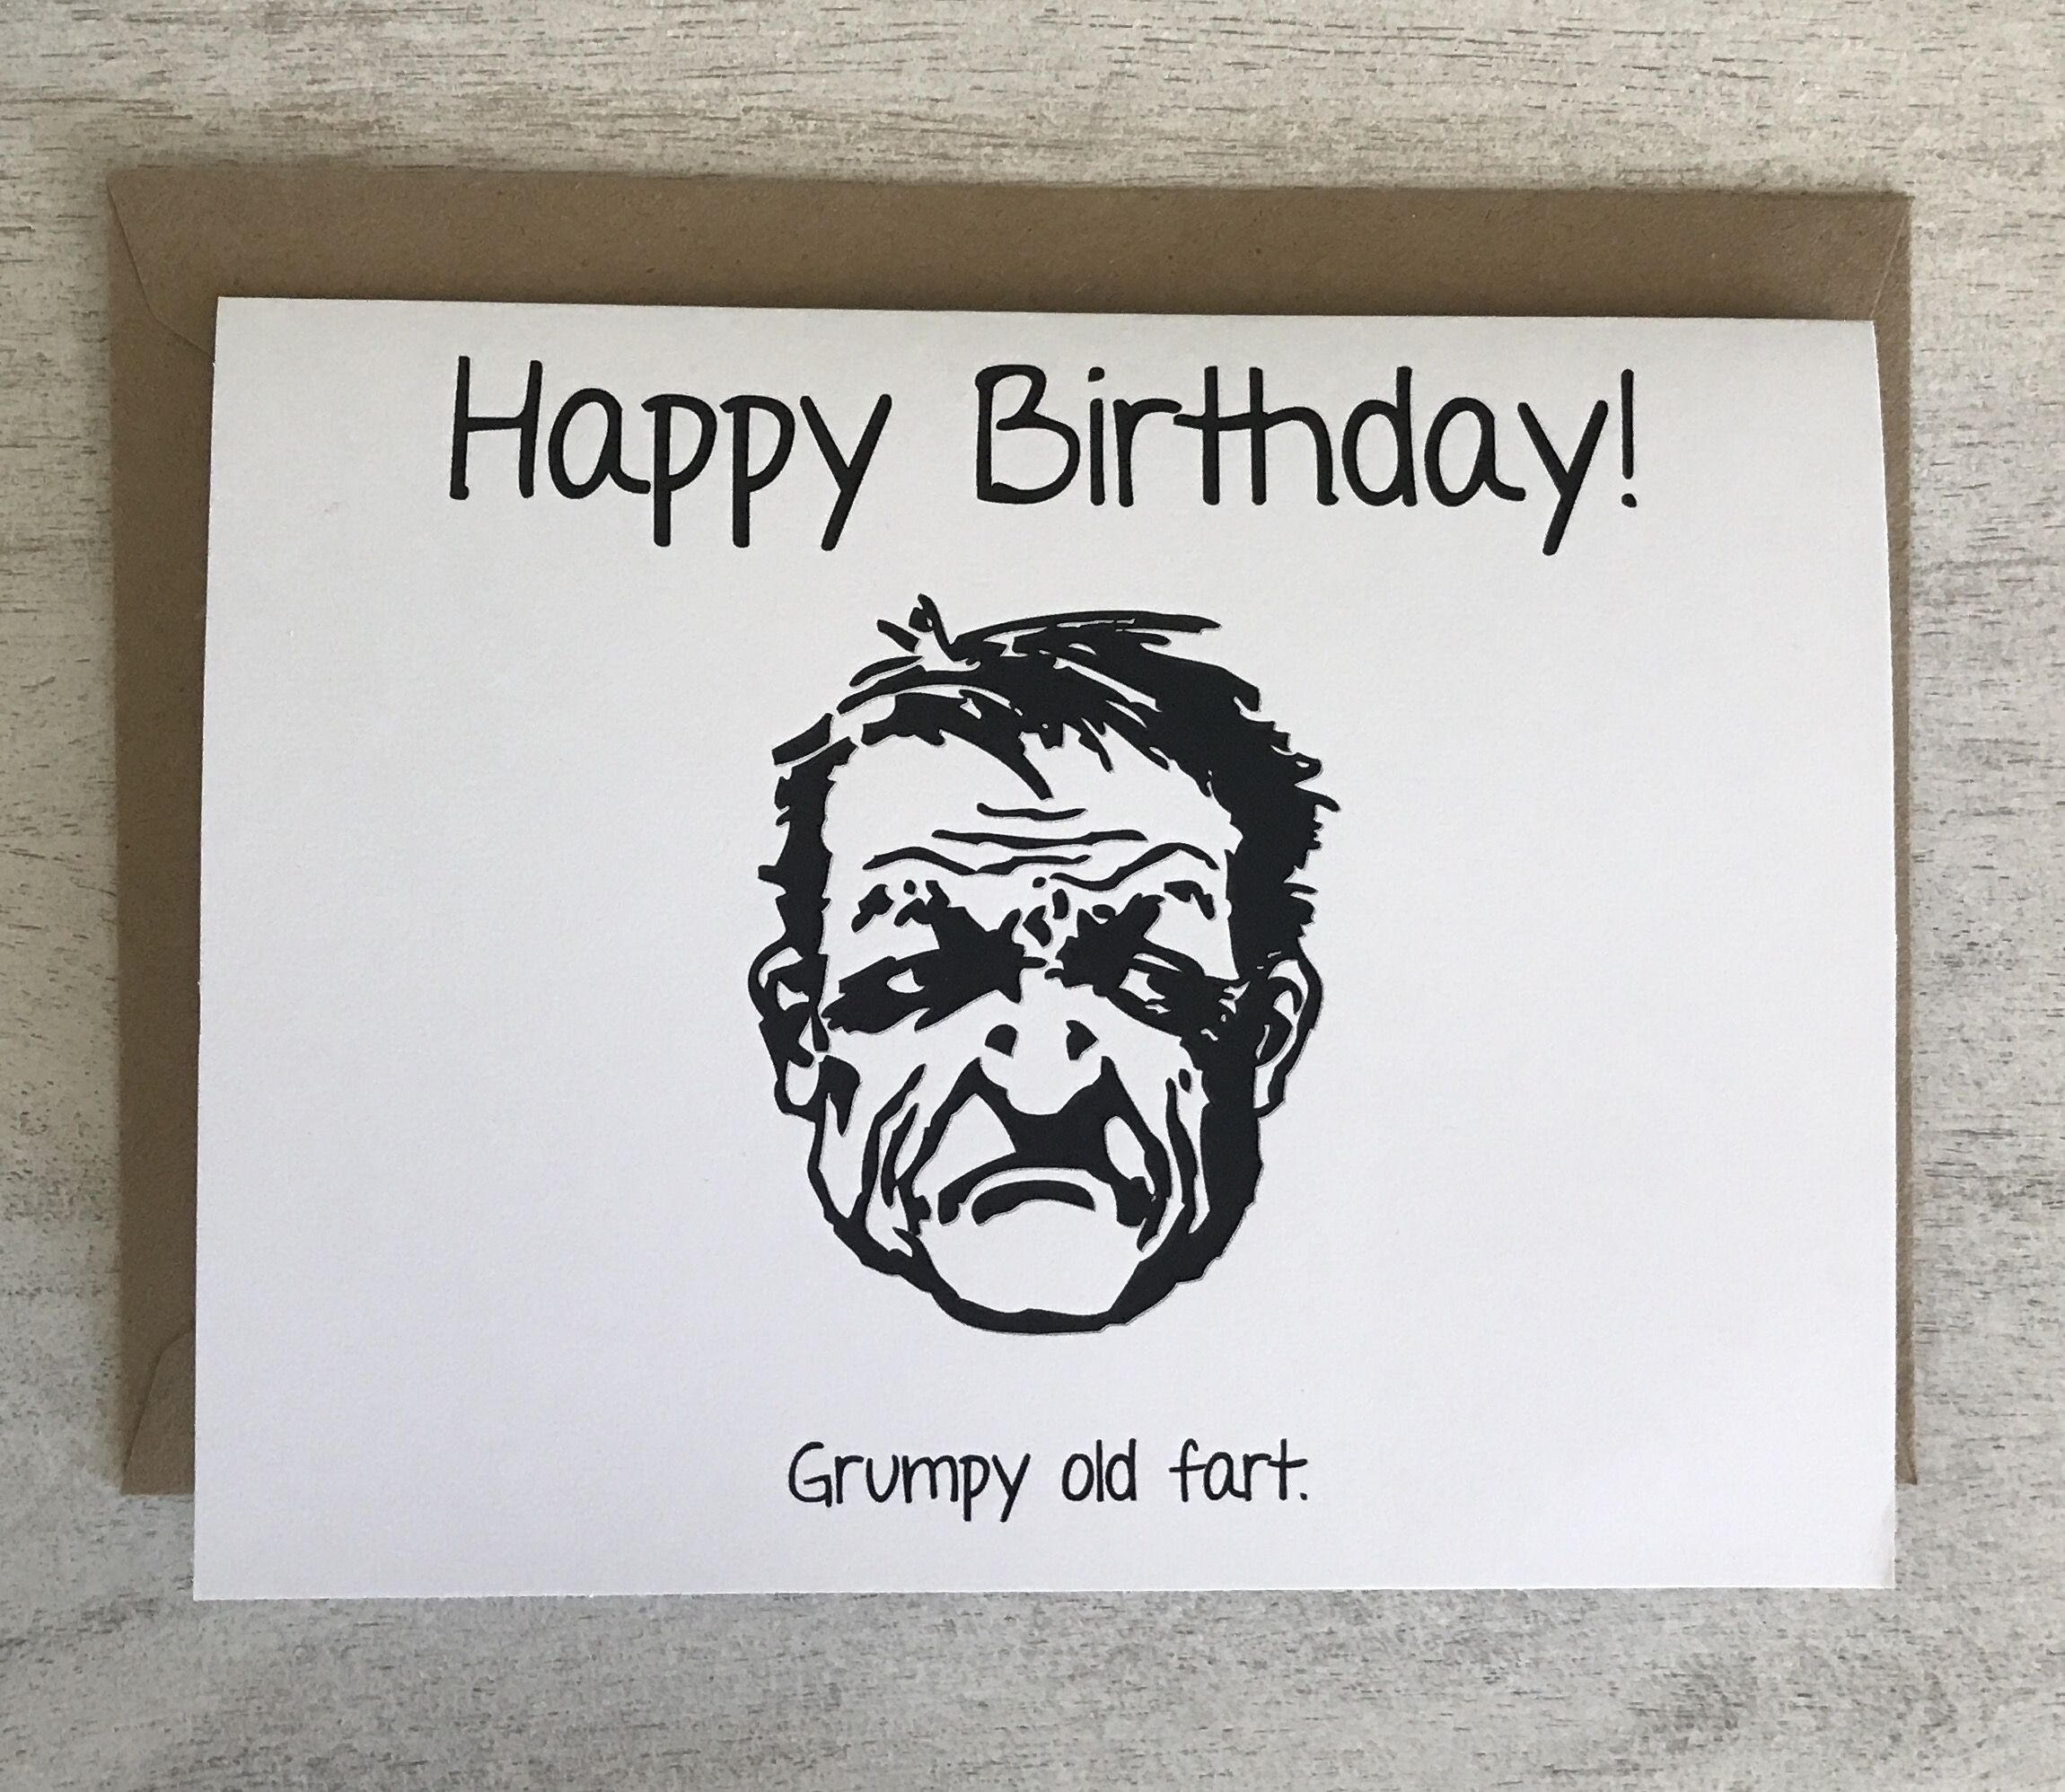 Happy Birthday Grumpy Old Fart Funny Card Cards For Husband Boyfriend Naughty Him Her